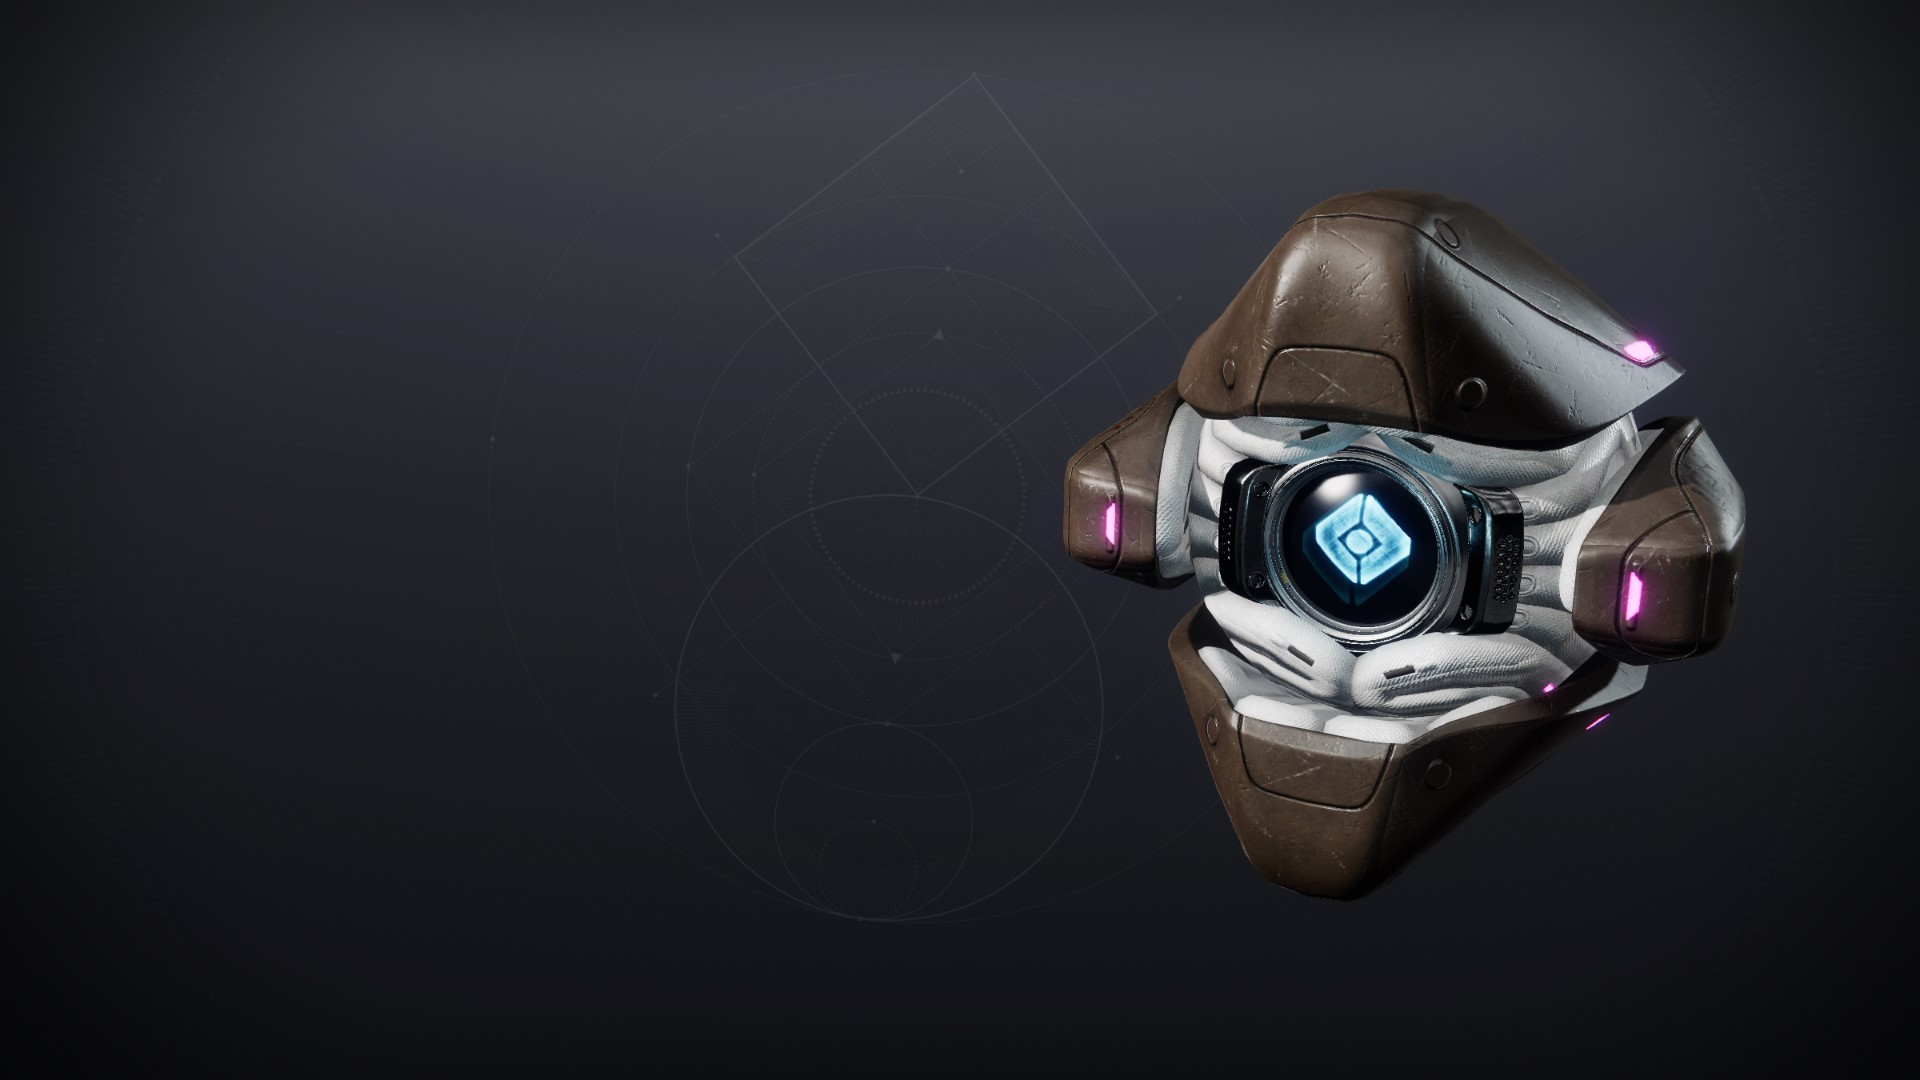 An in-game render of the Digital Cortex.